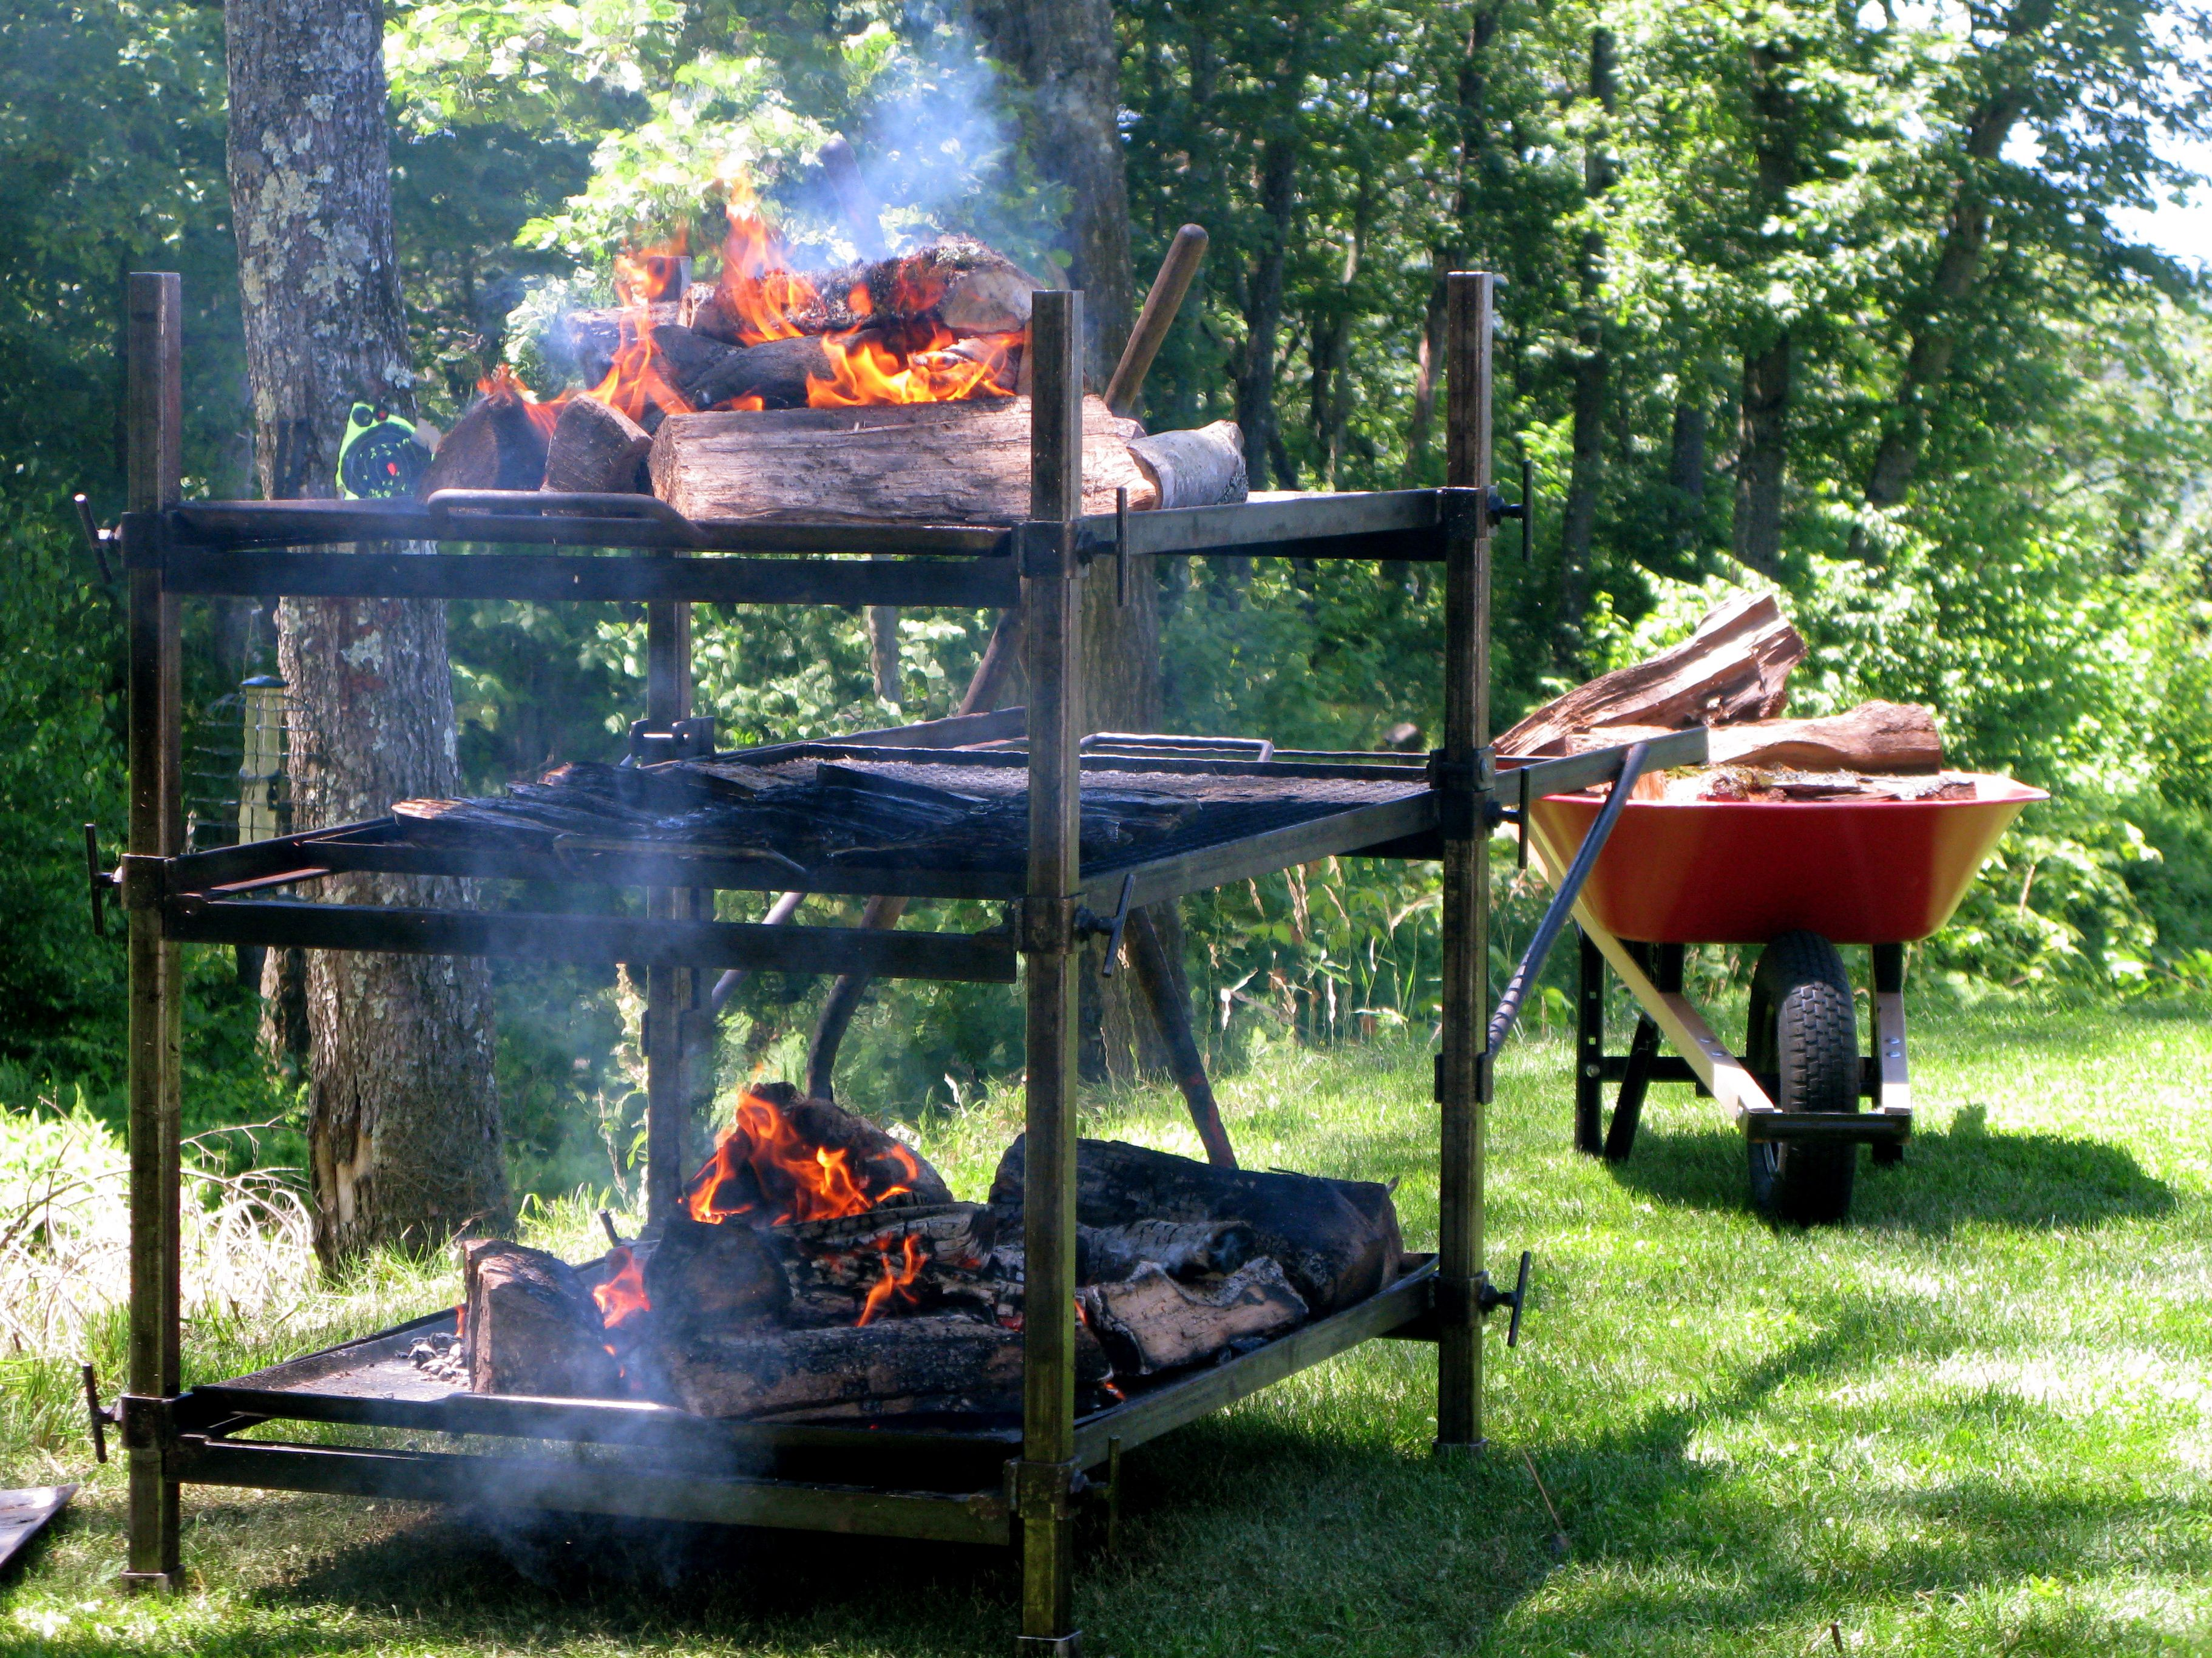 Threetiered grill/smoker Fire pit cooking, Open fire